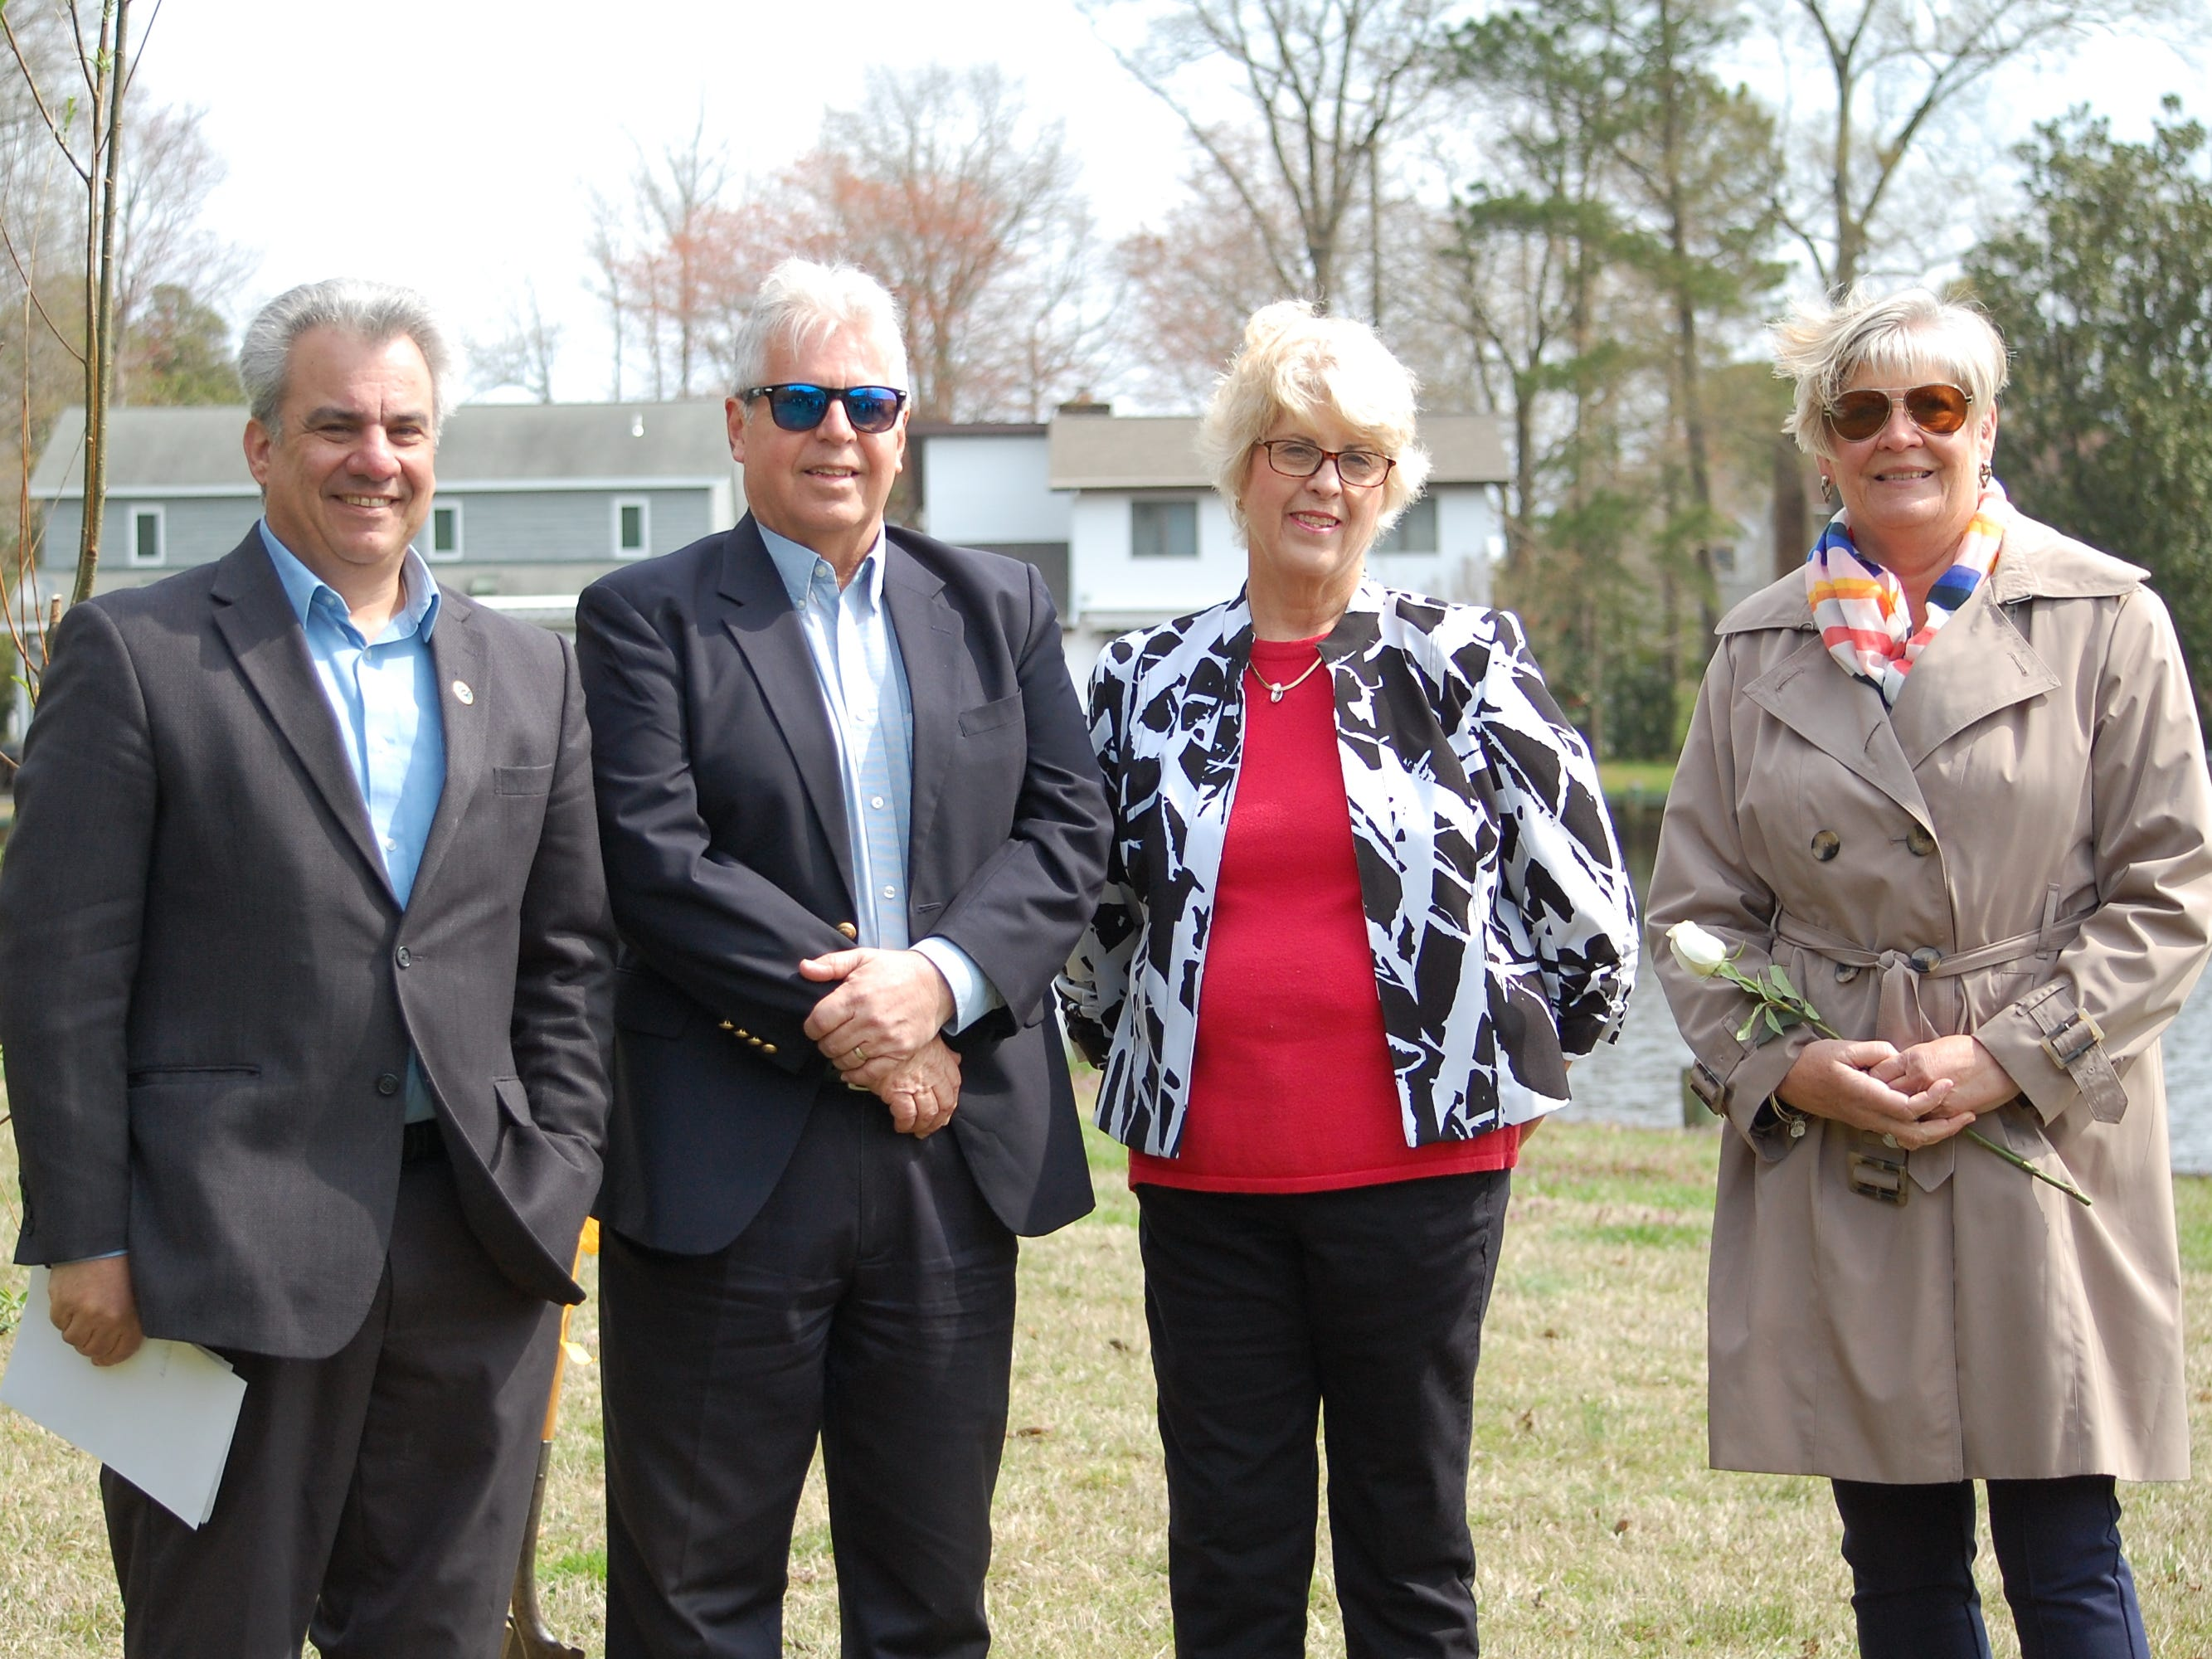 At the memorial ceremony at Pintail Park in Ocean Pines are, from left,  Worcester County Commissioner Chip Bertino, Ocean Pines Board President Doug Parks, event organizer Ann Shockley and Ocean Pines Garden Club President Linda Baker.